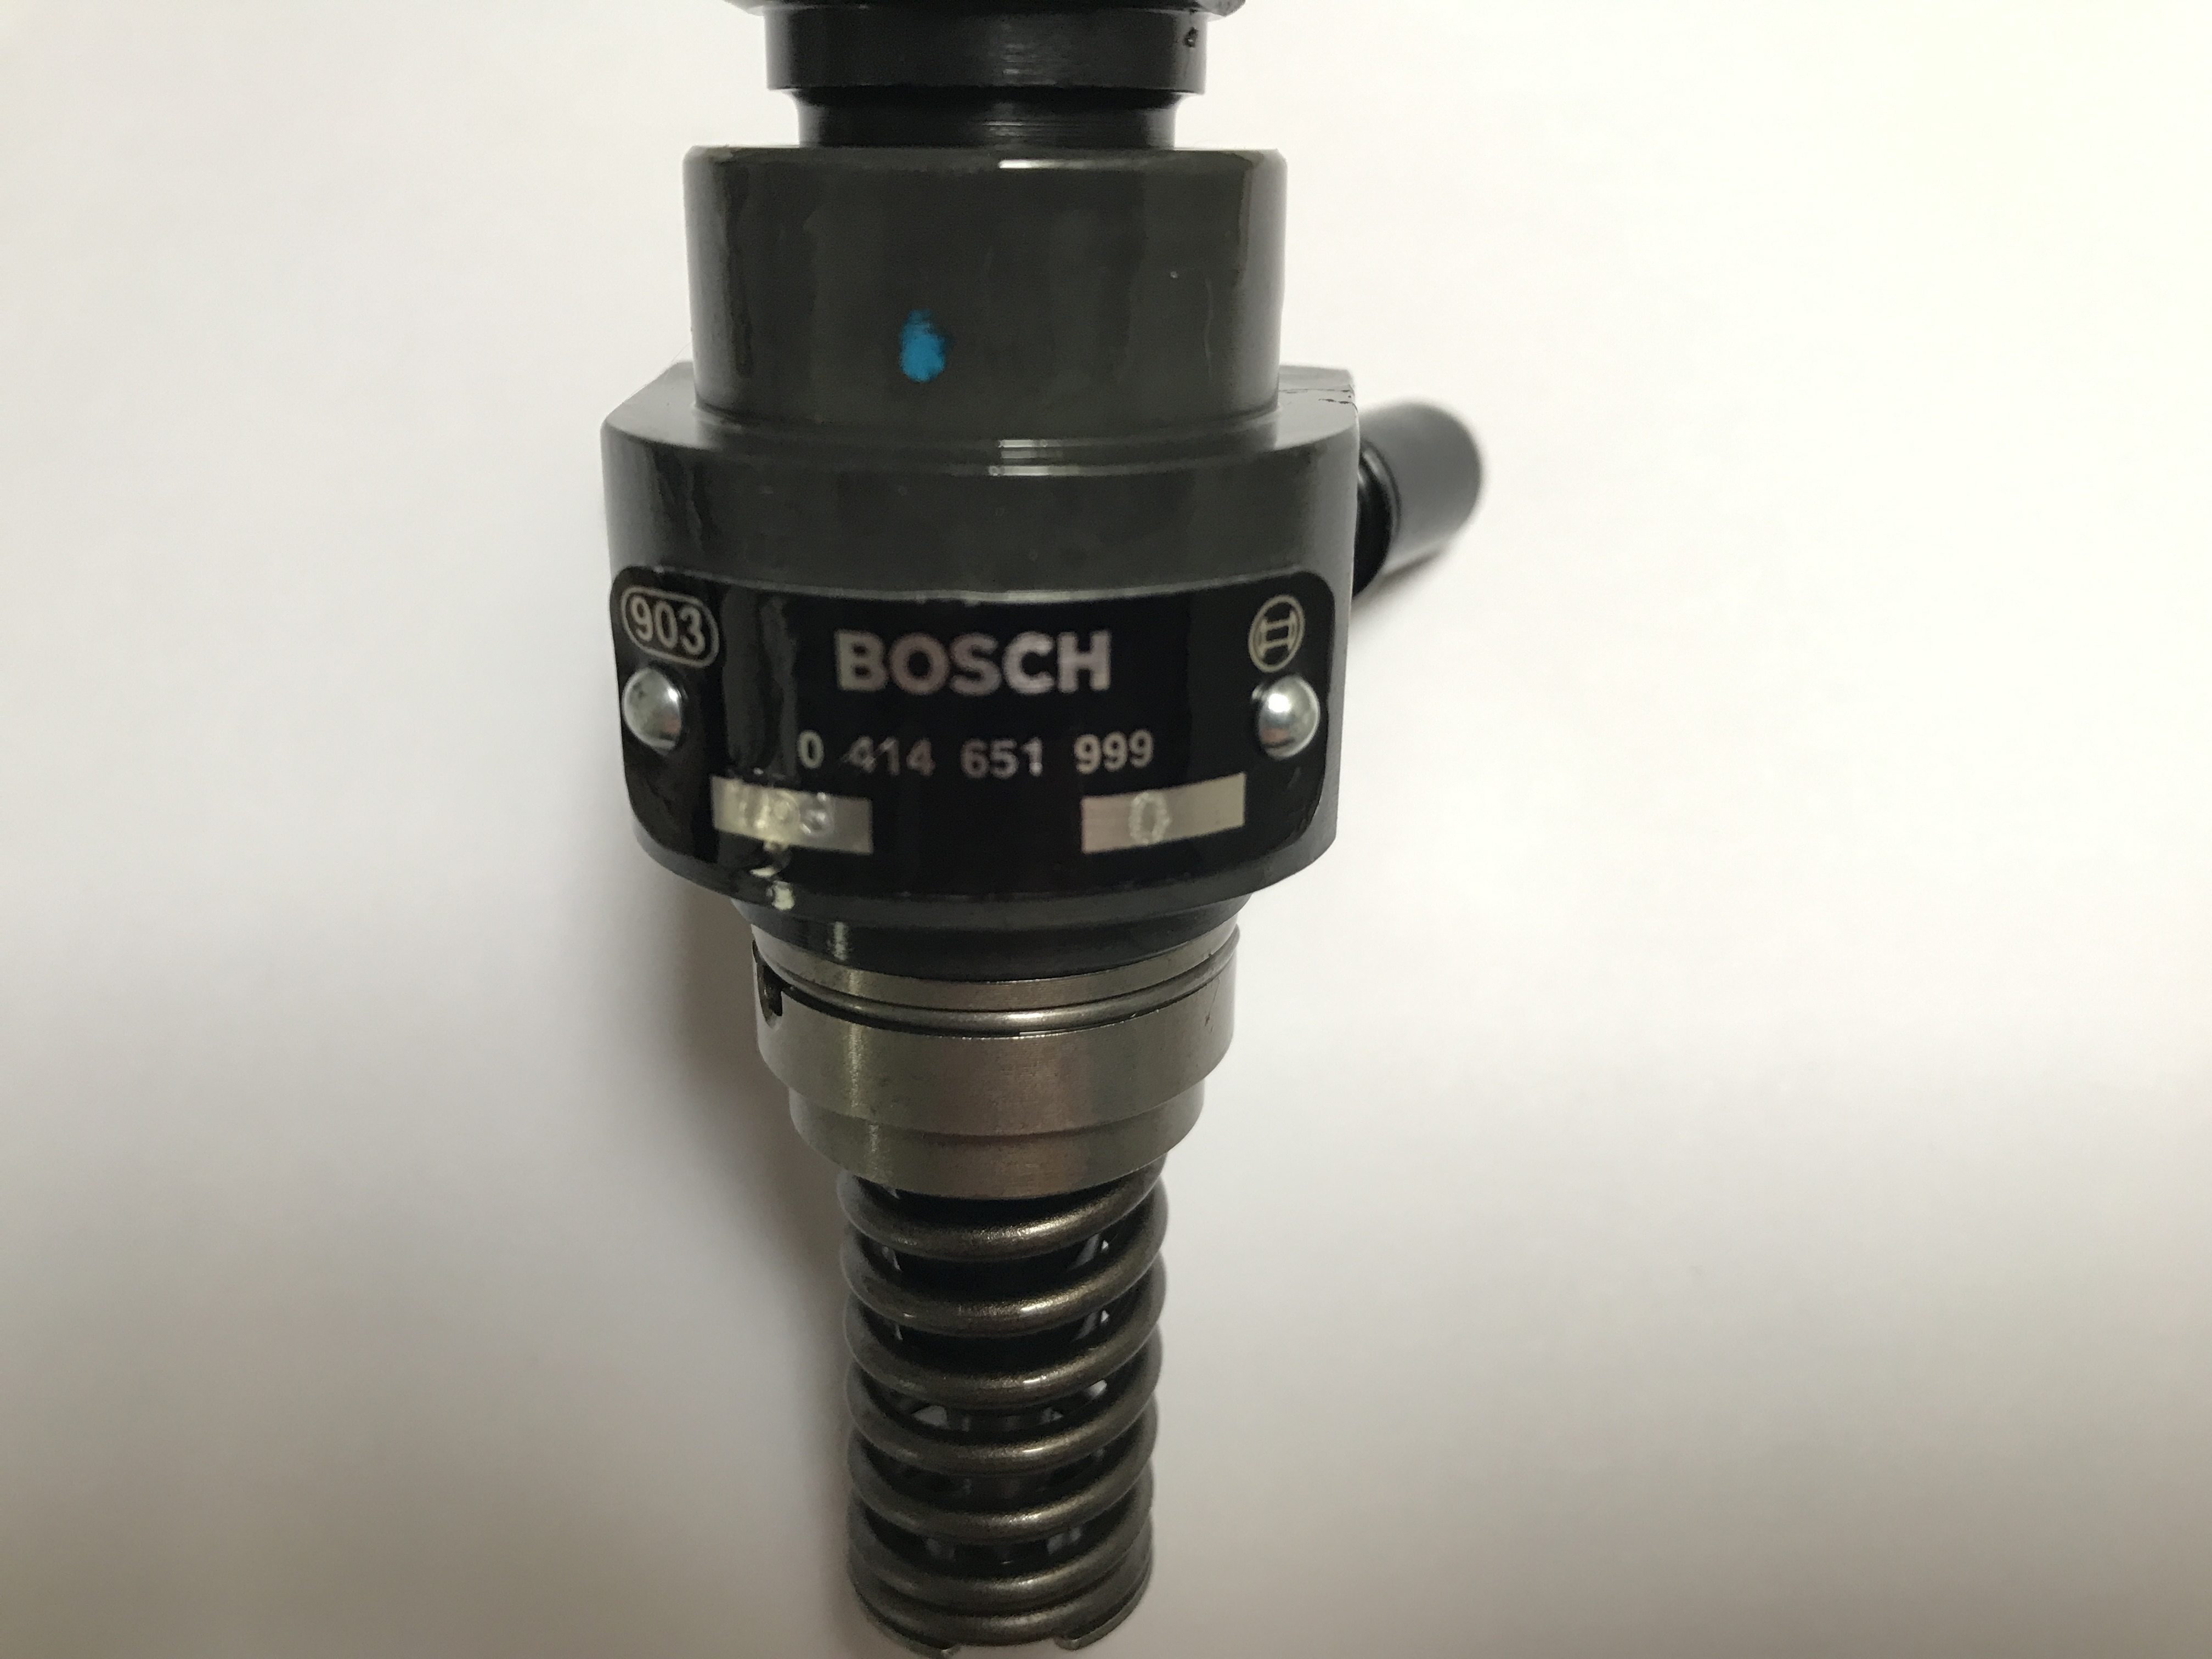 Pompe injection LOMBARDINI LDW442 LDW442CRS LDW492 LDW492 DCi- 6590438 ED0065904380-S BOSCH 0414651999